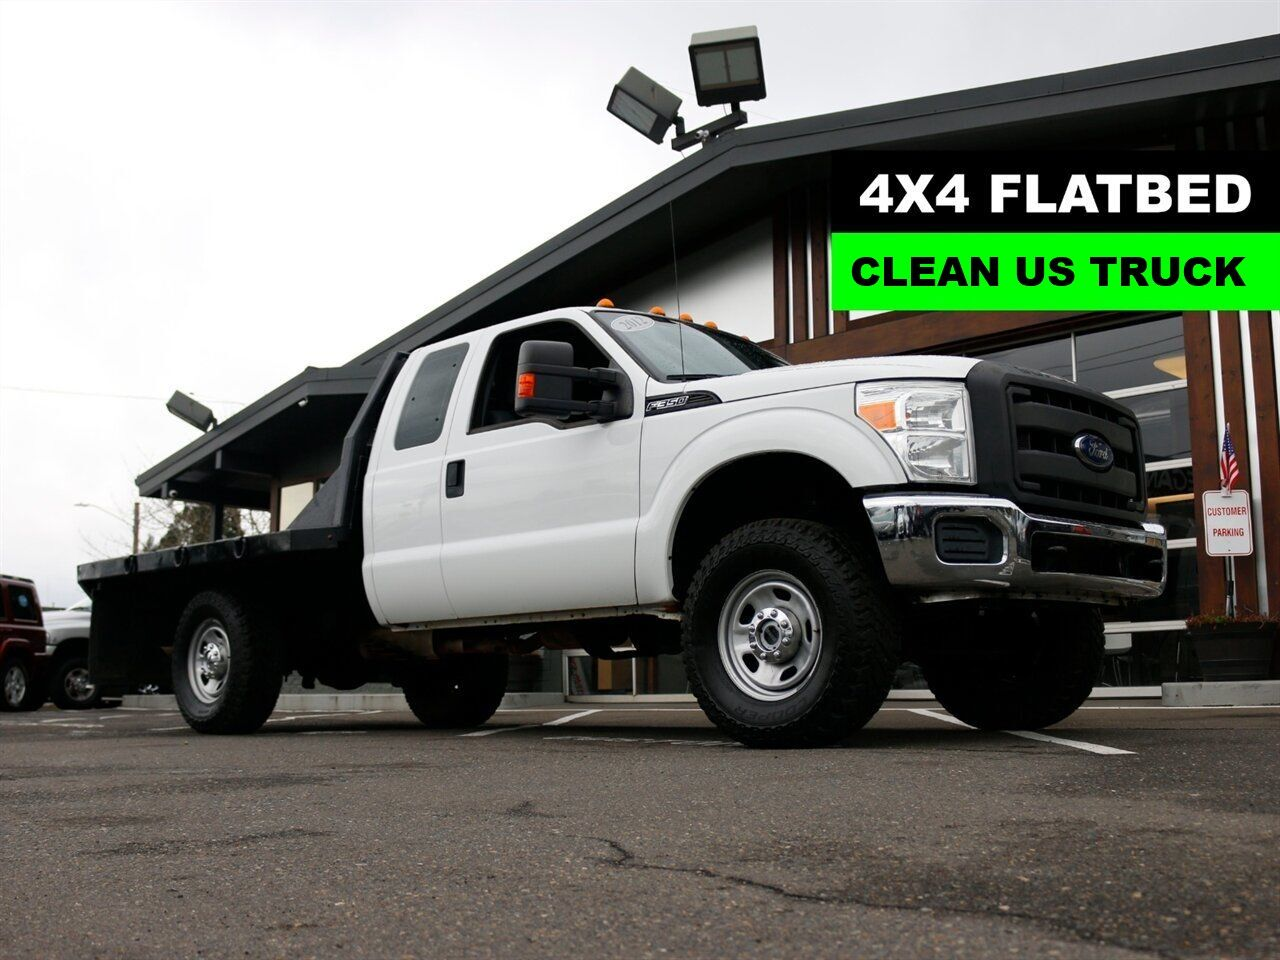 2012 Ford F-350 Super Duty / 4X4 / FLAT BED / US TRUCK